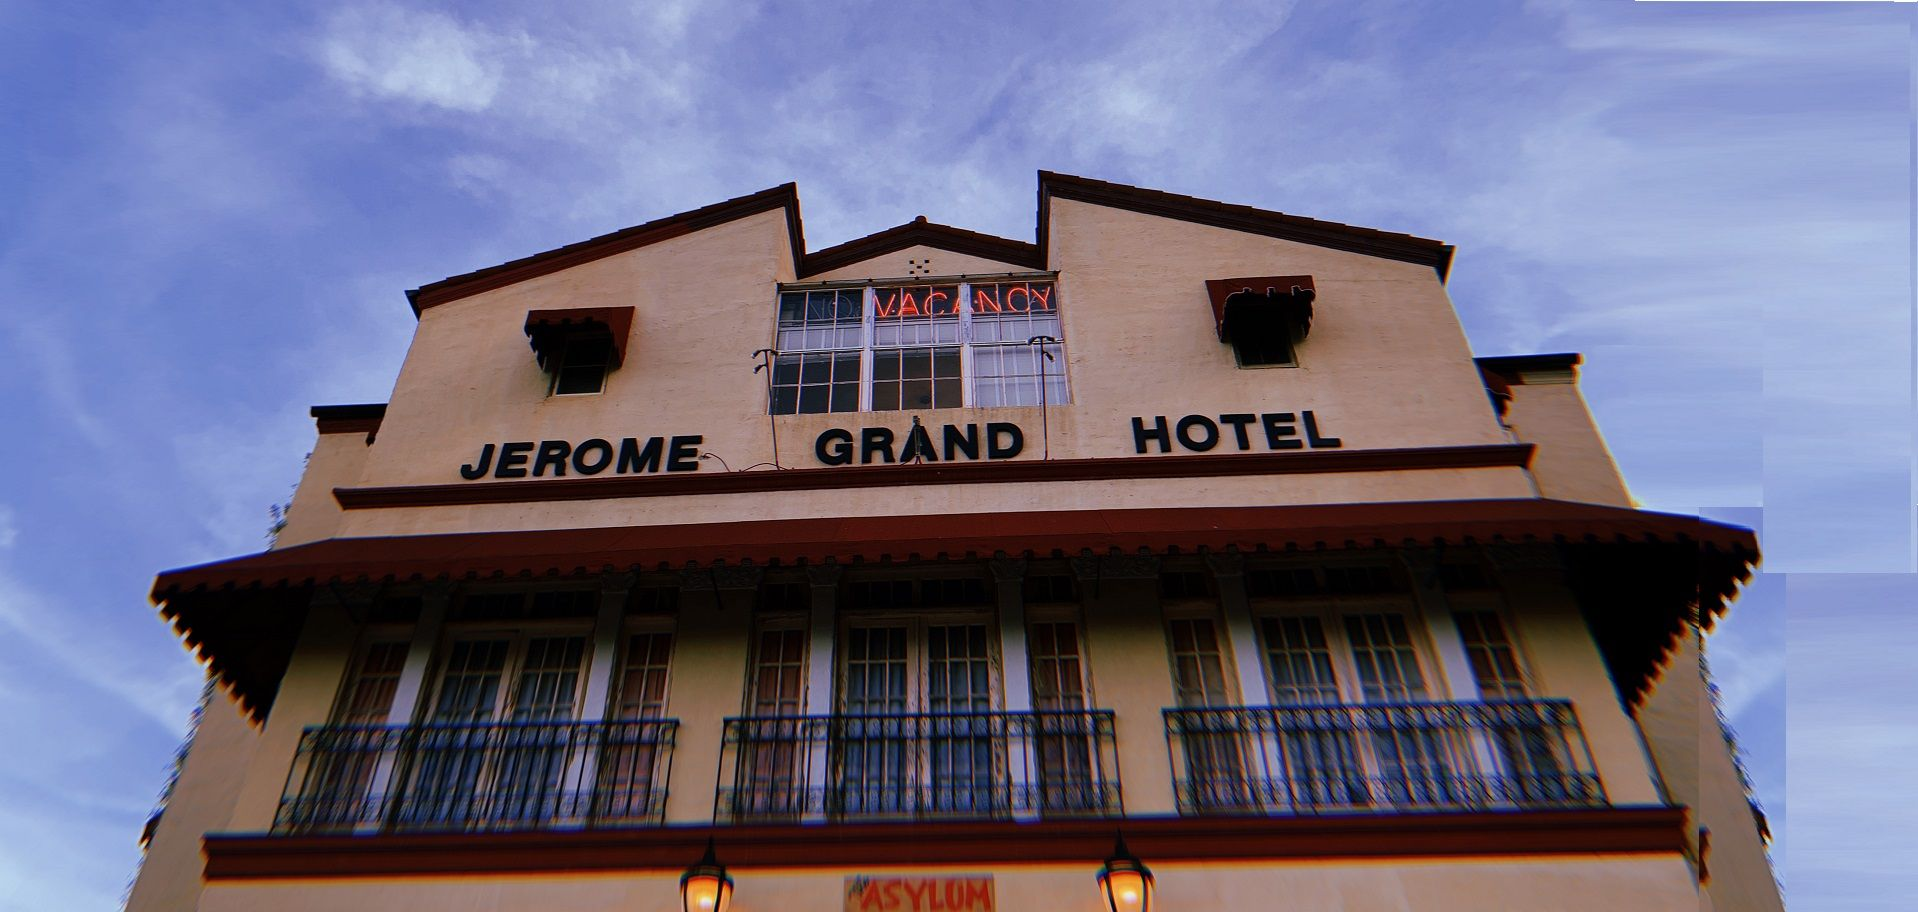 az-jerome-grand-hotel-000000-haunted-journeys